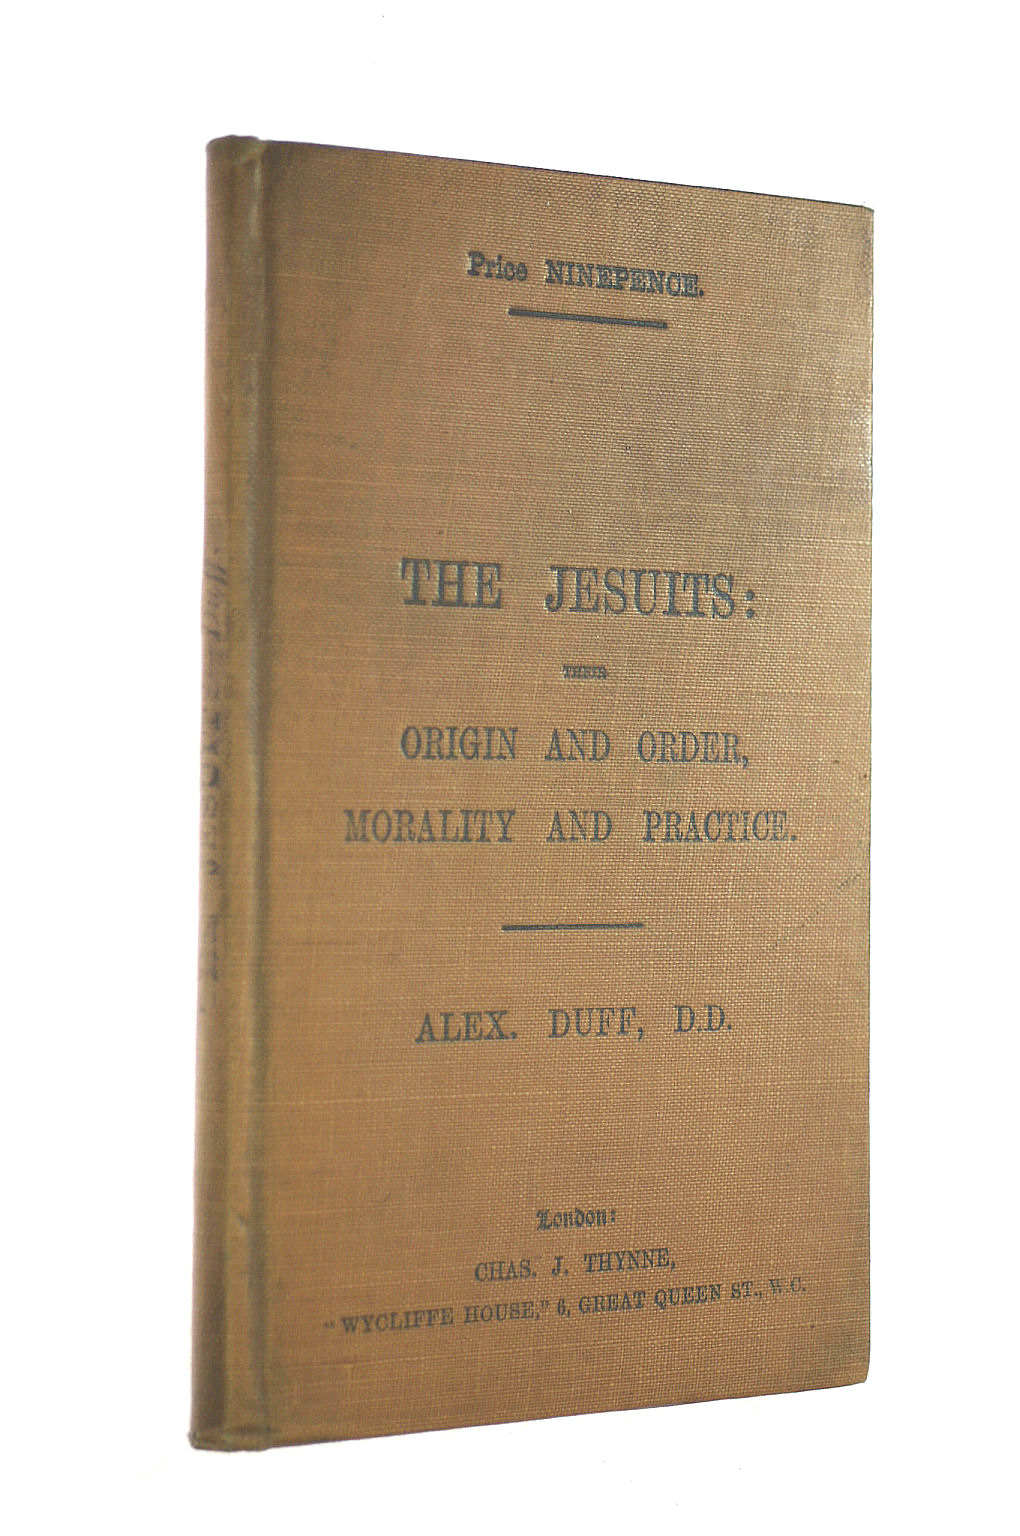 Image for The Jesuits: their origin and order, morality and practices, suppression and restoration ... Fifth edition, etc